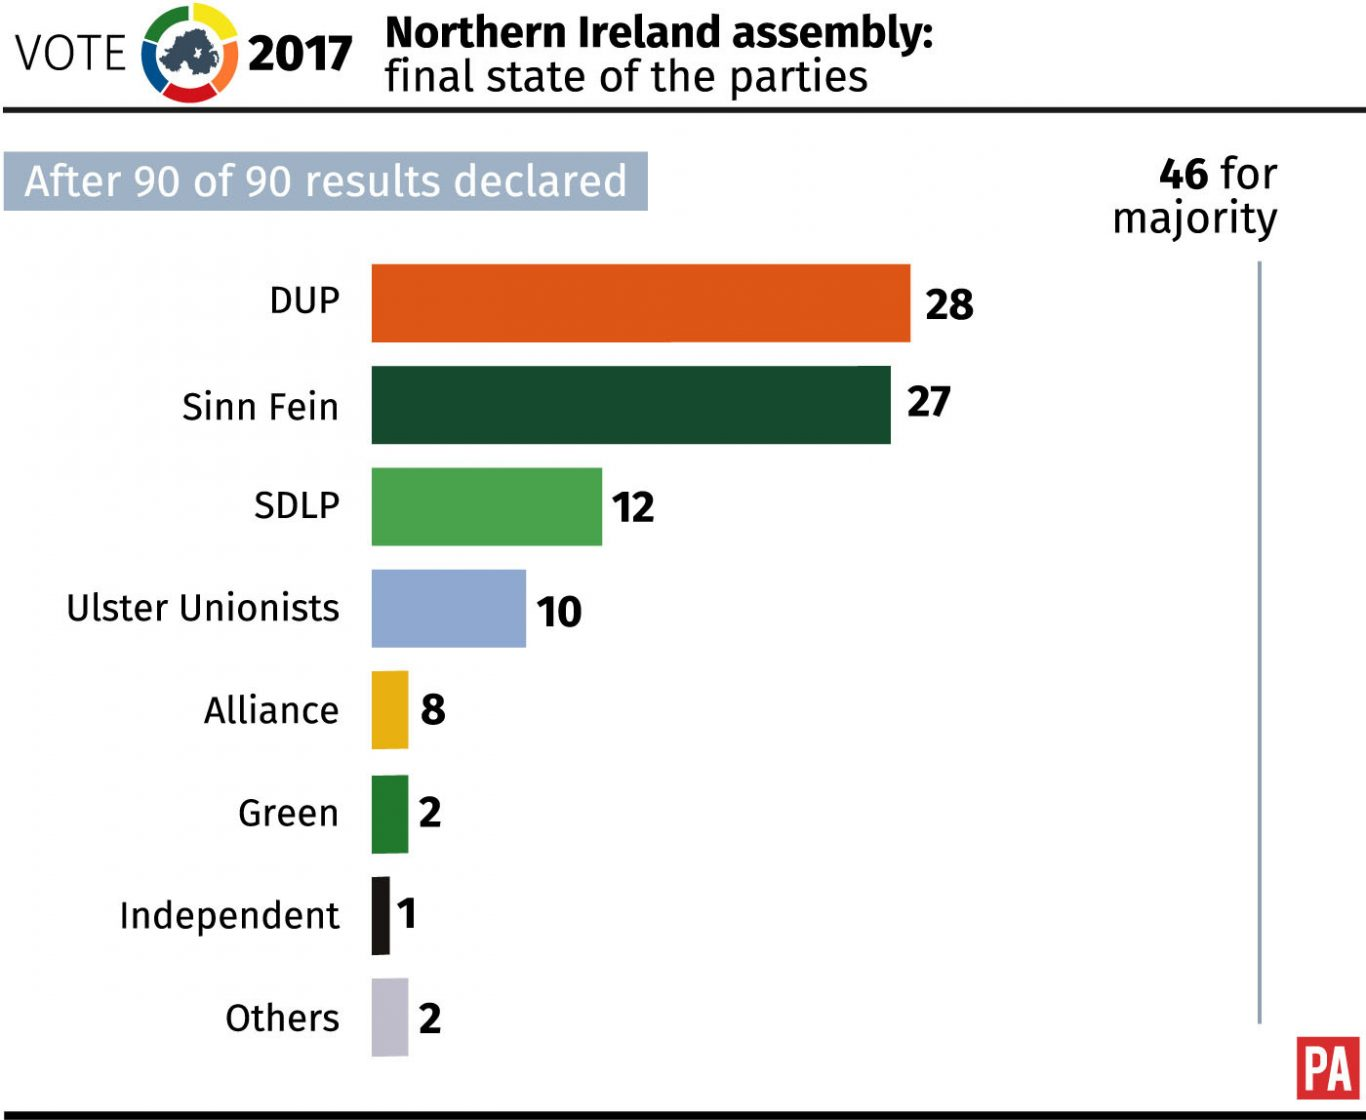 Northern Ireland assembly: final state of the parties.